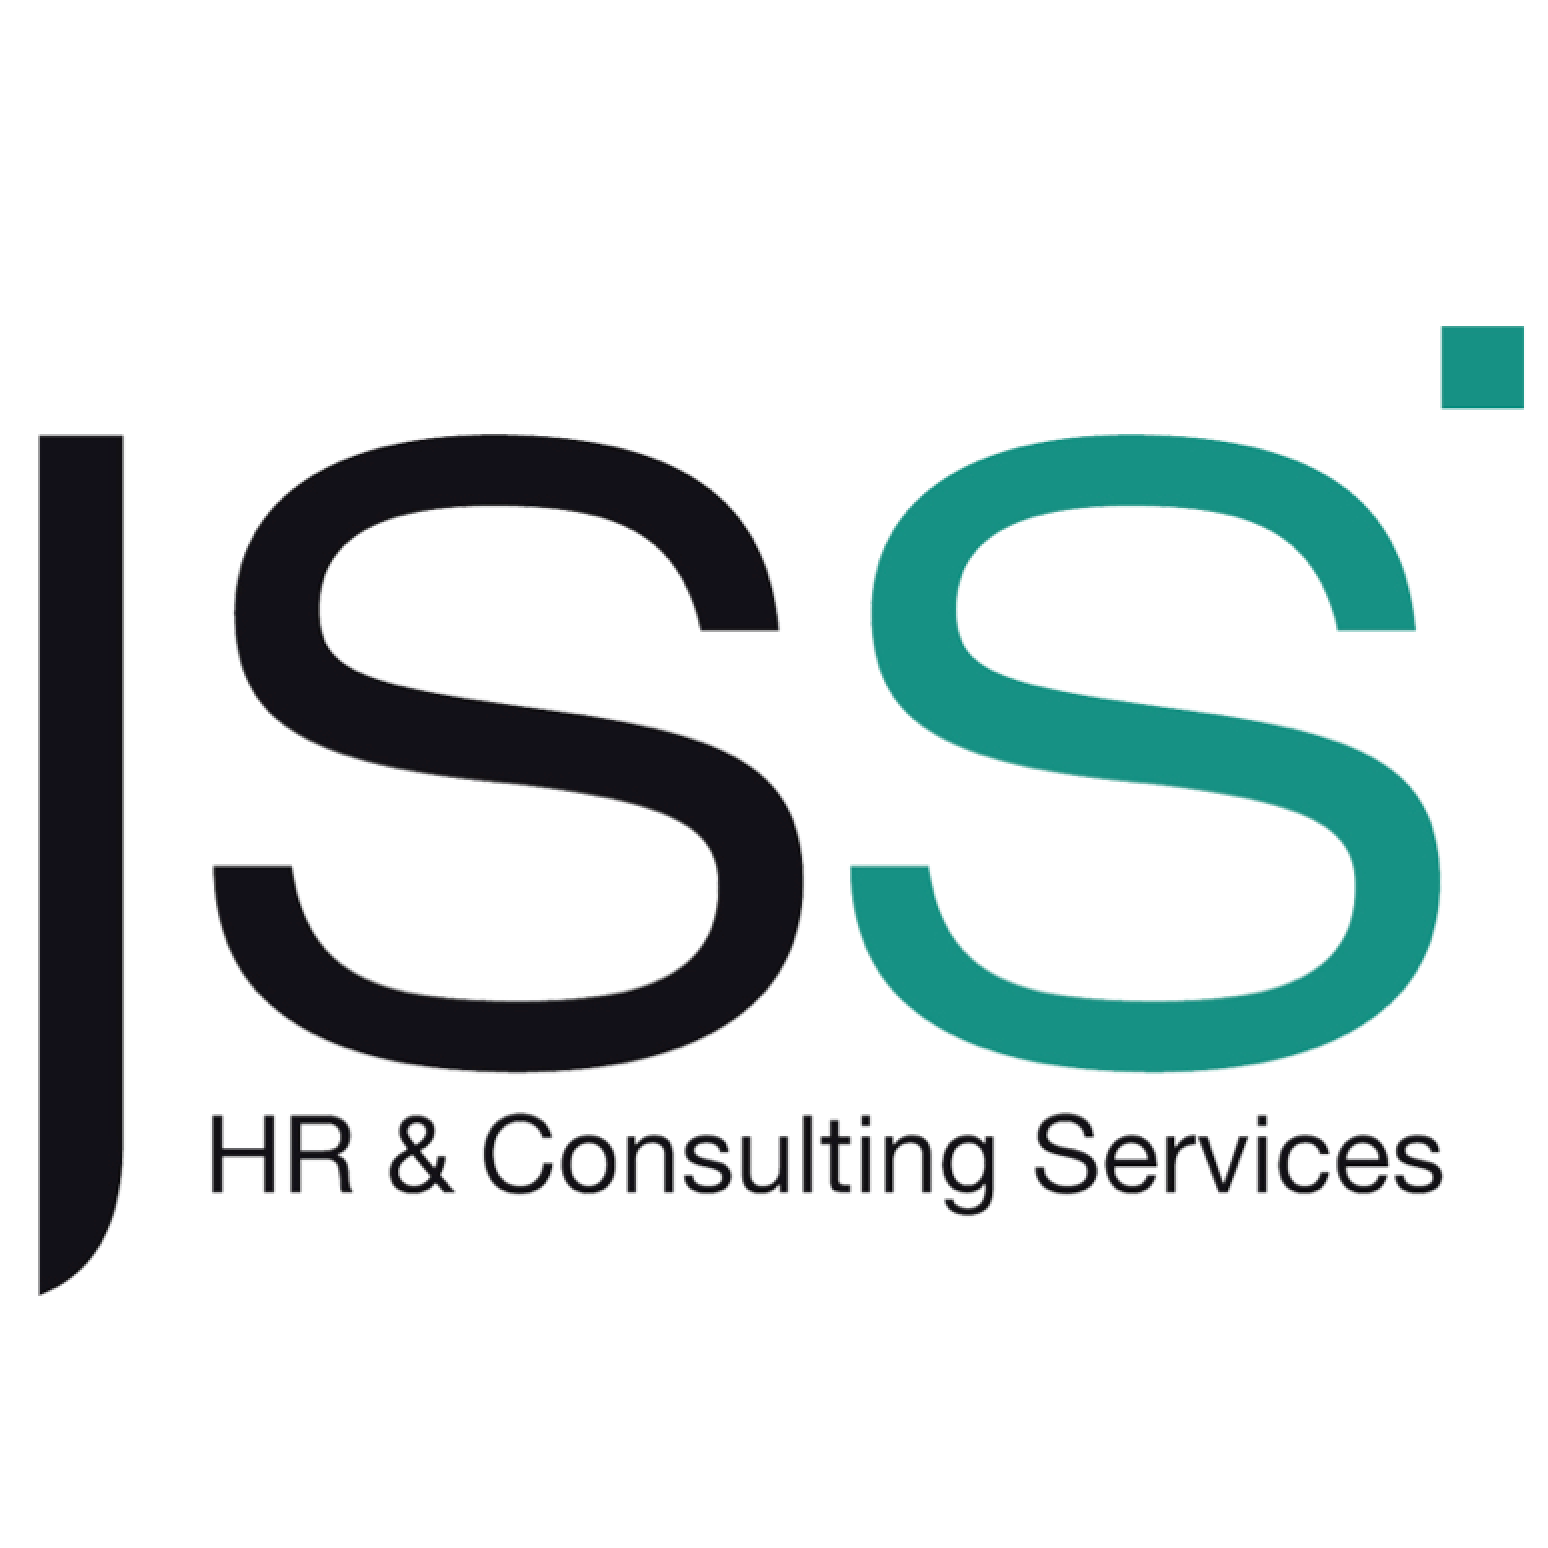 JSS HR & Consulting Services logo